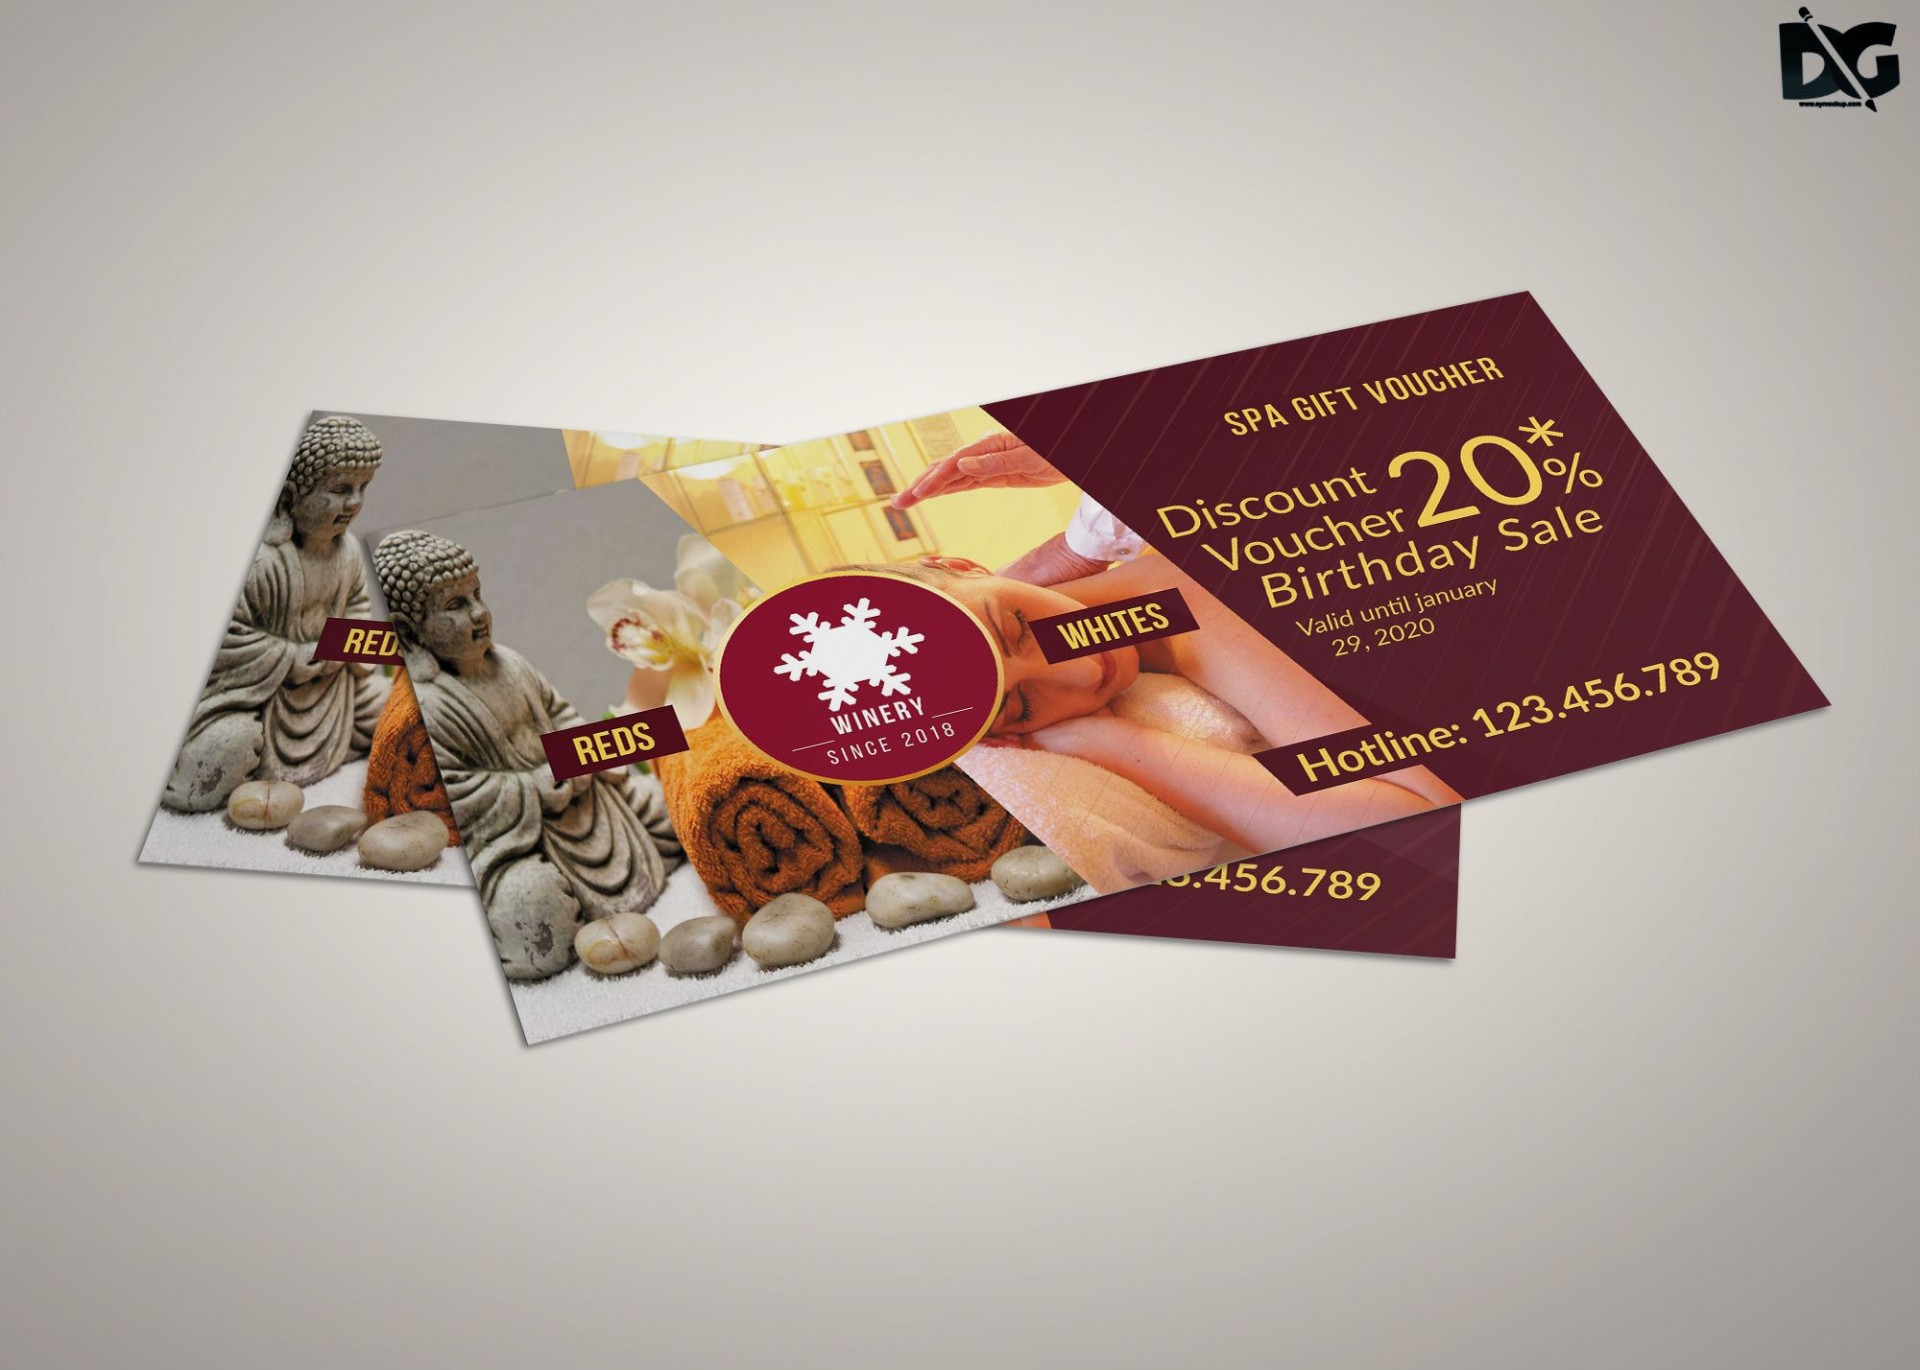 003 Formidable Gift Card Template Psd Example  Christma Photoshop Free Holder1920